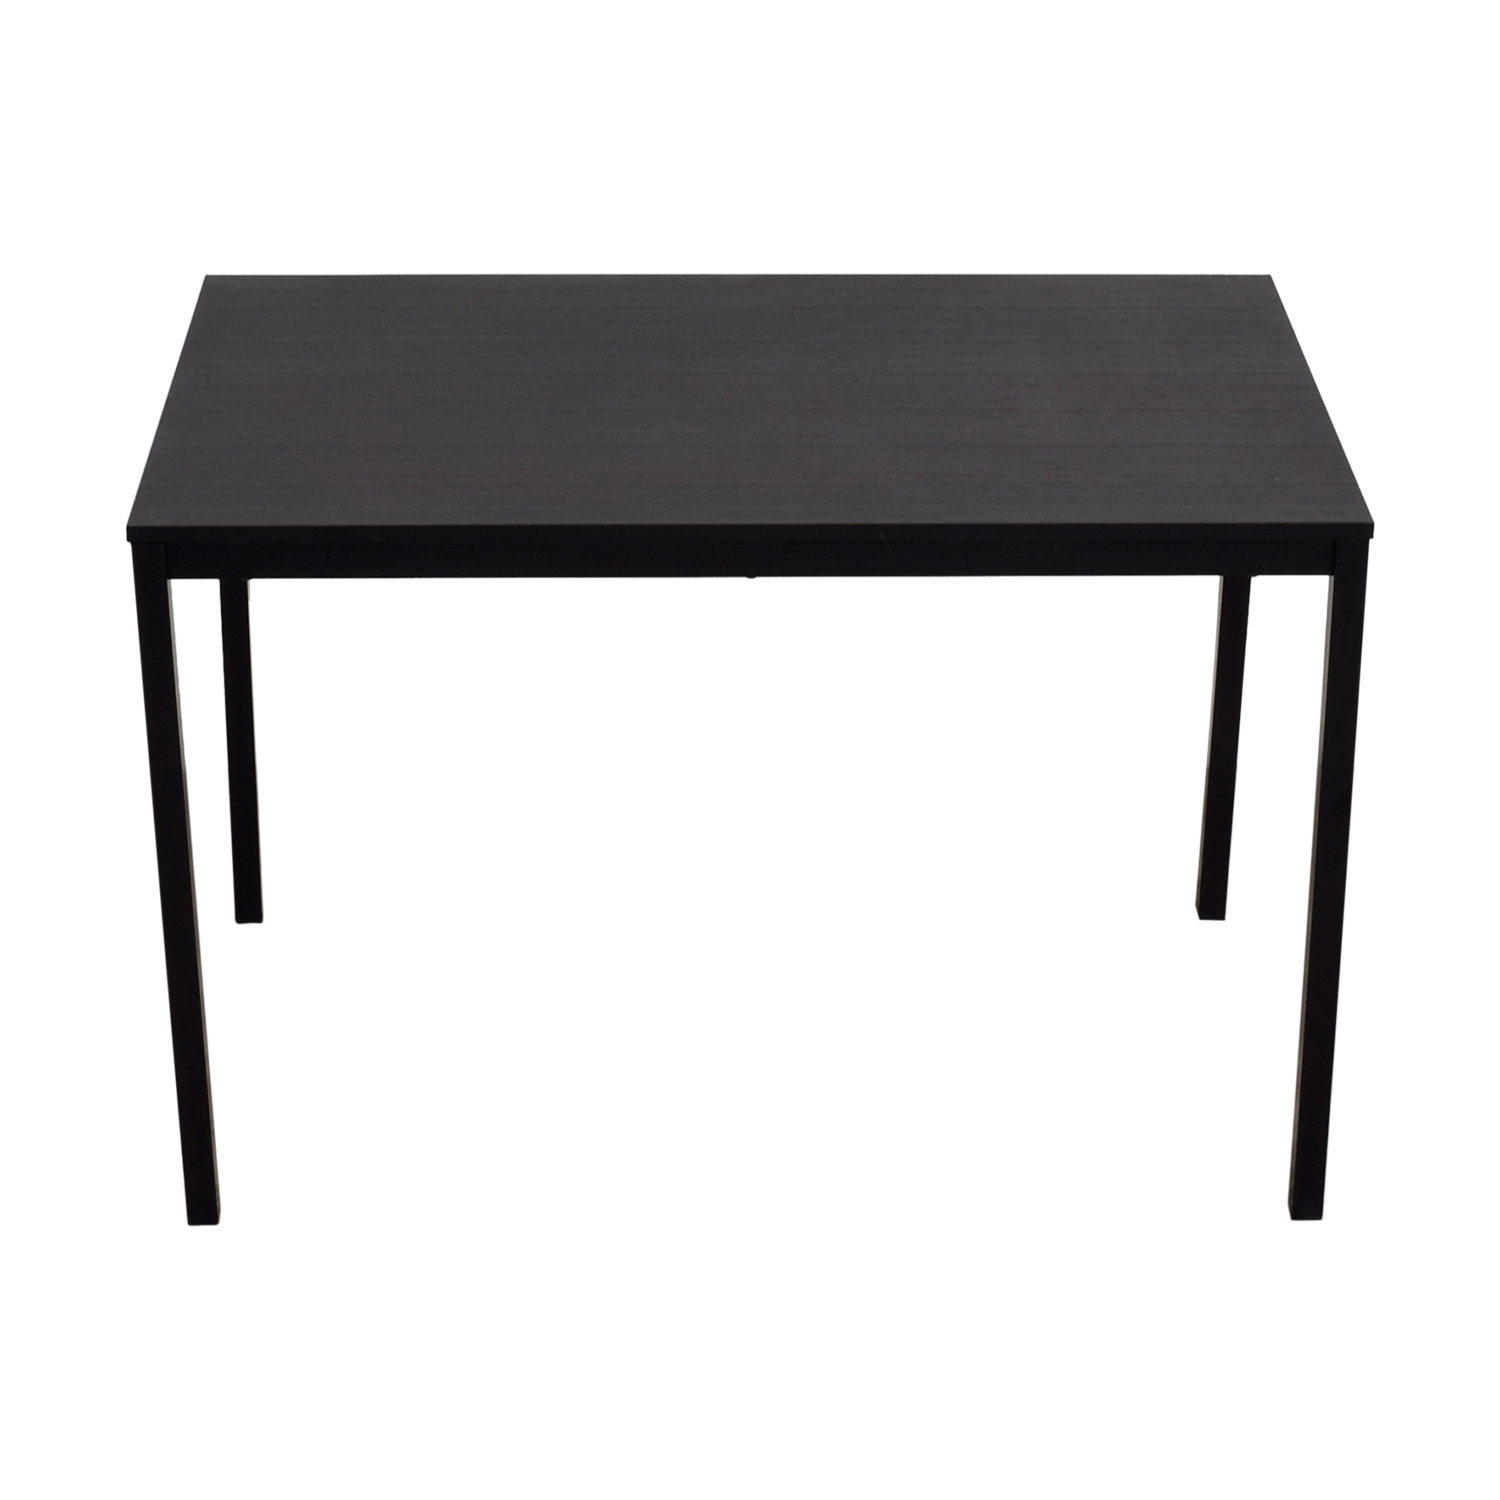 buy IKEA Tarendo Black Dining Table IKEA Dinner Tables